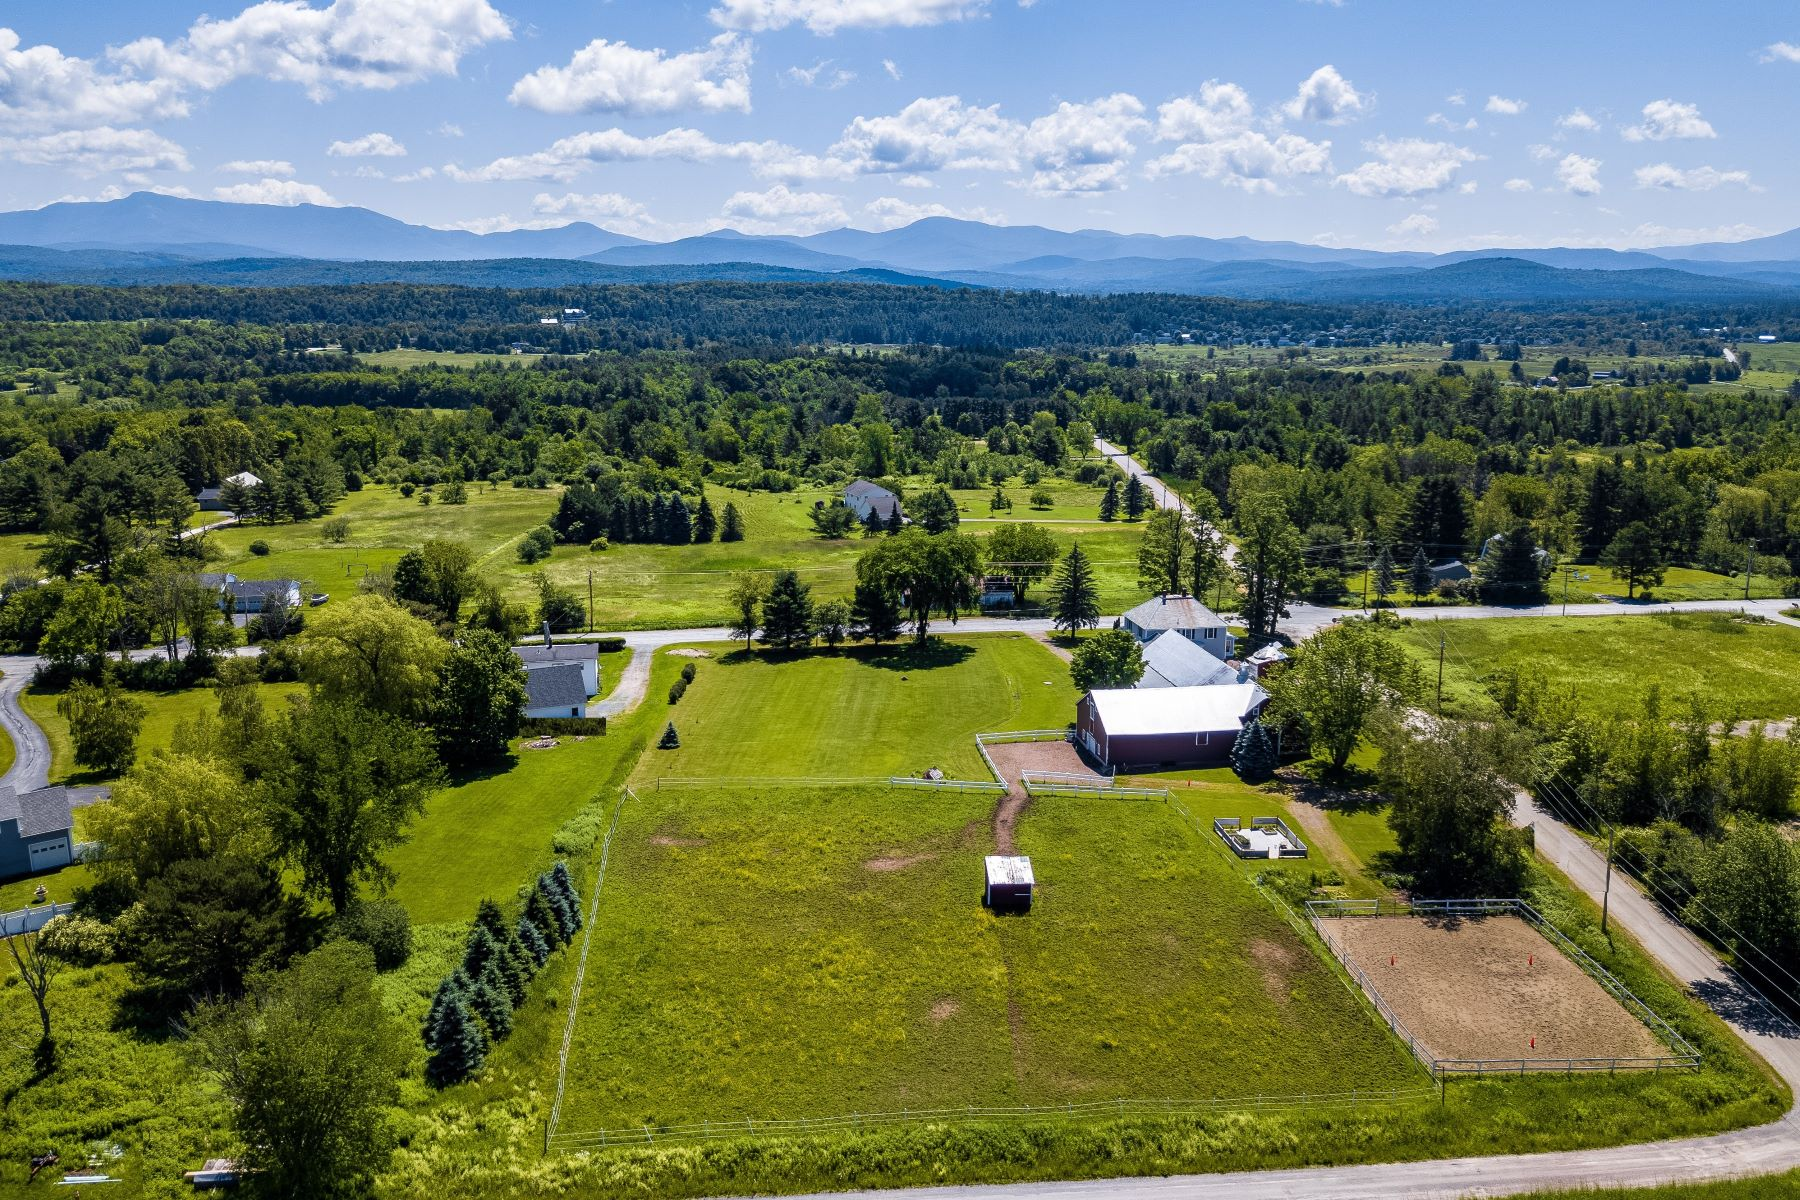 Single Family Homes for Sale at 140 Old Stage Road, Essex 140 Old Stage Rd Essex, Vermont 05452 United States